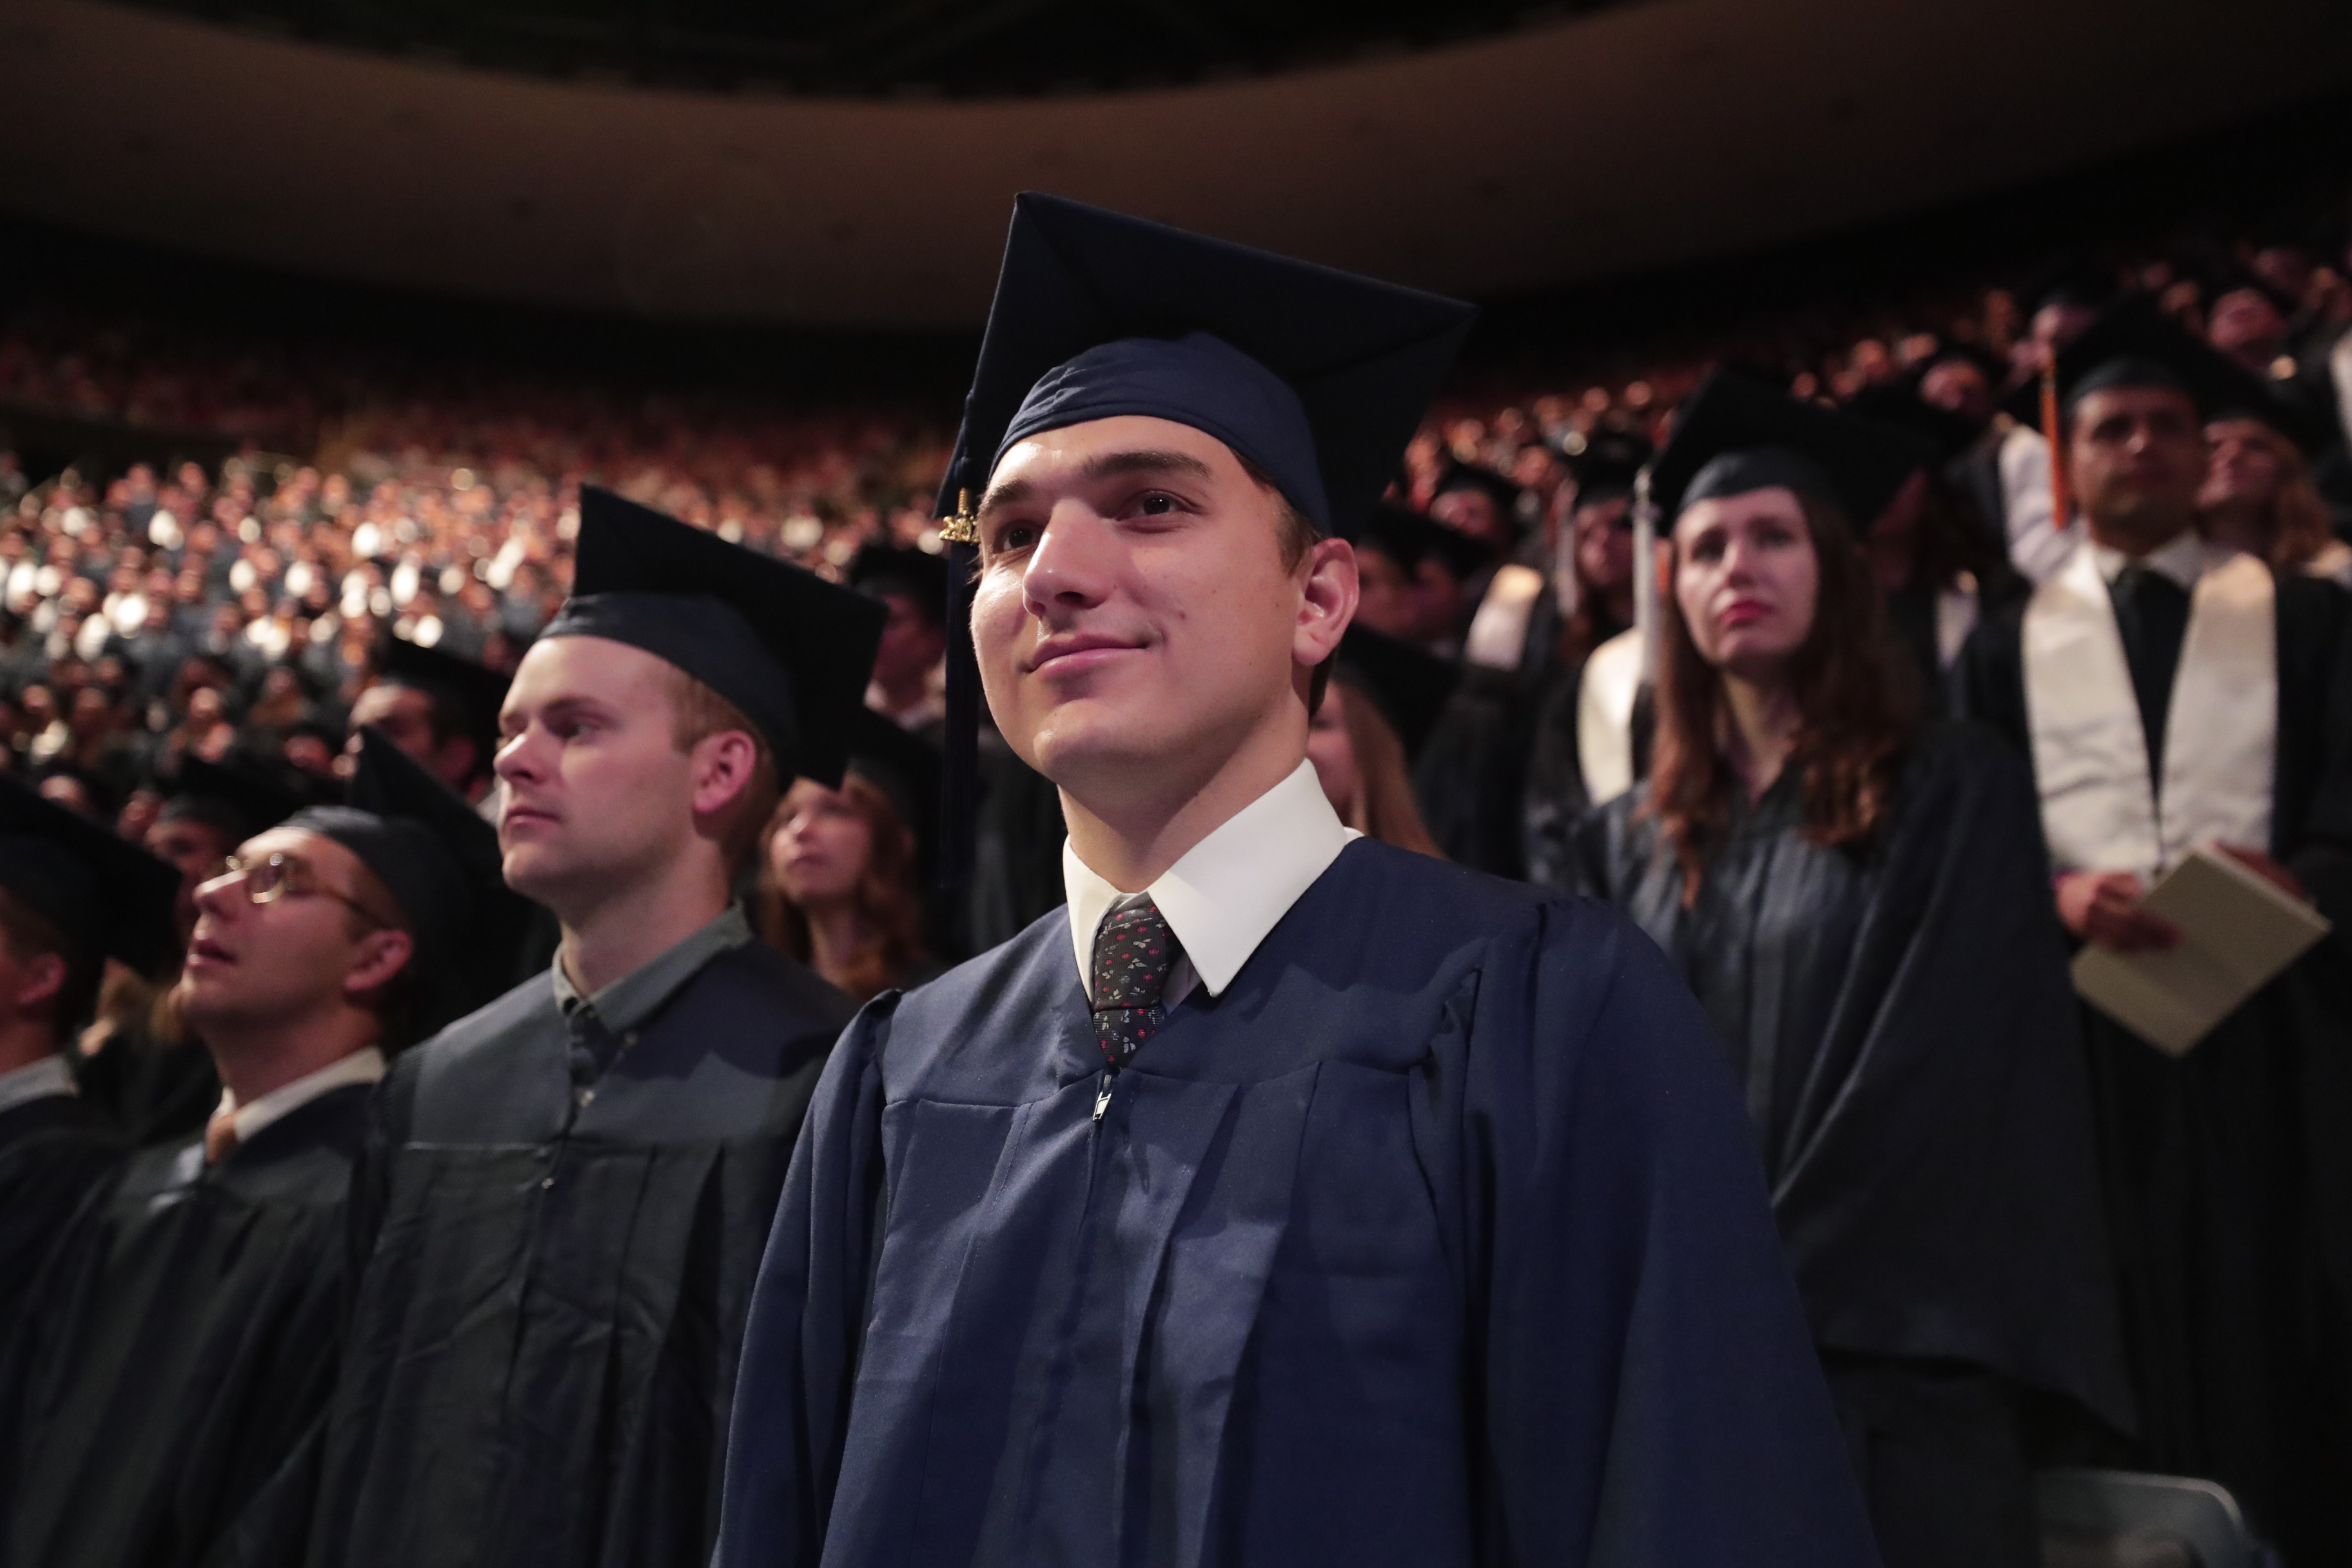 Graduates gather for the April 25, 2019, commencement at BYU.